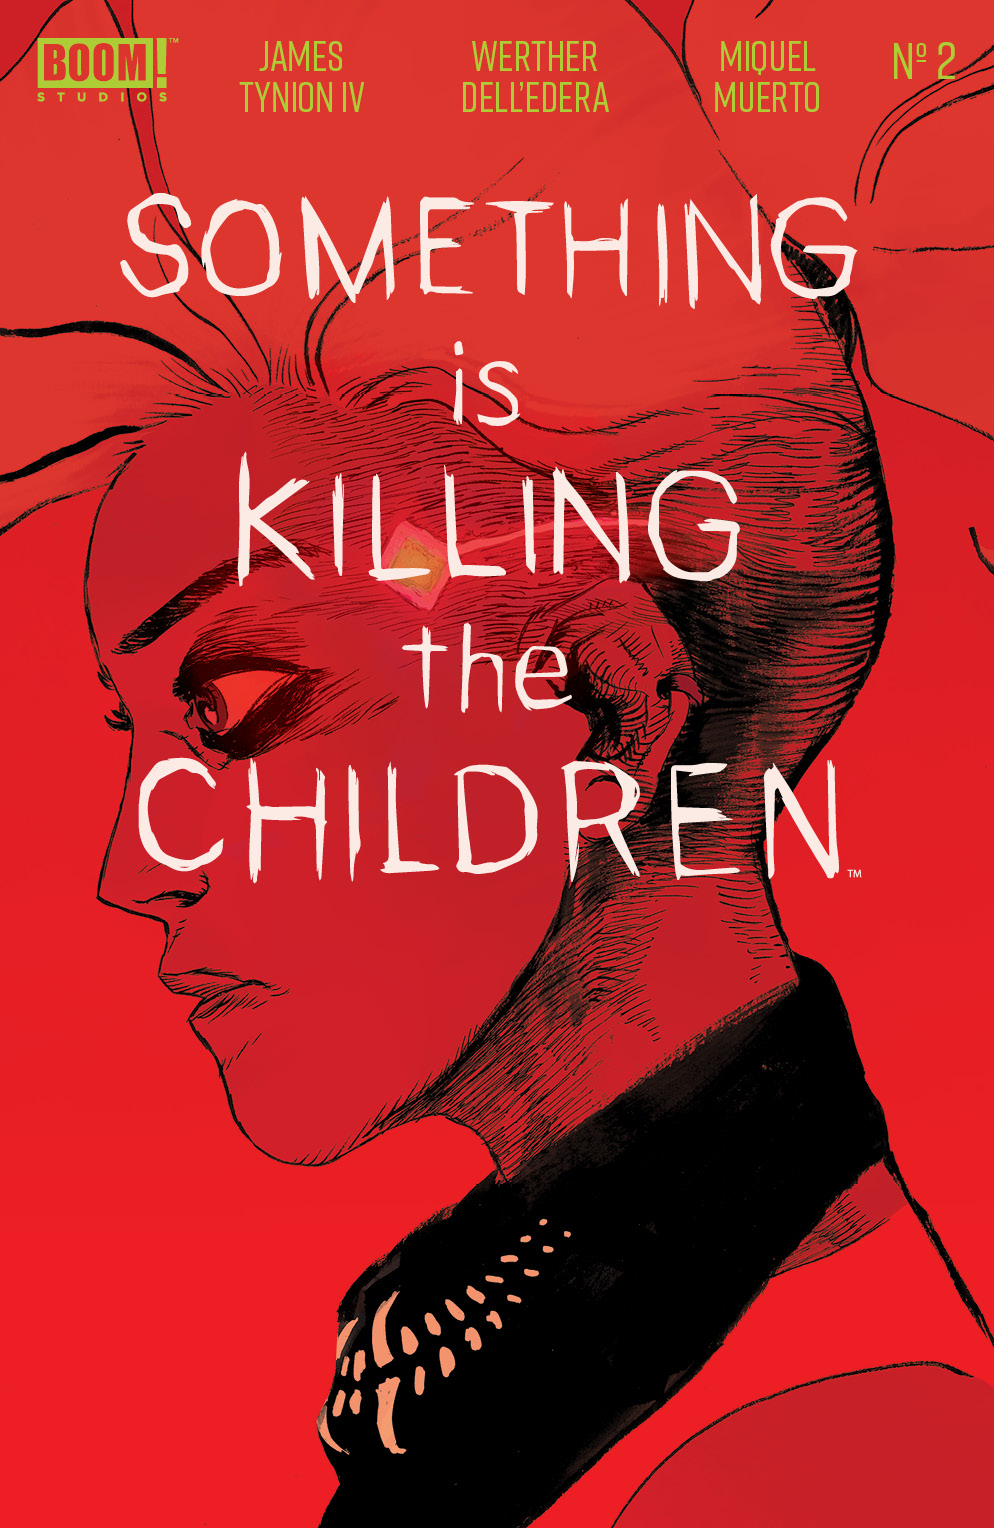 Something Is Killing The Children #2 Cover, BOOM! Studios.